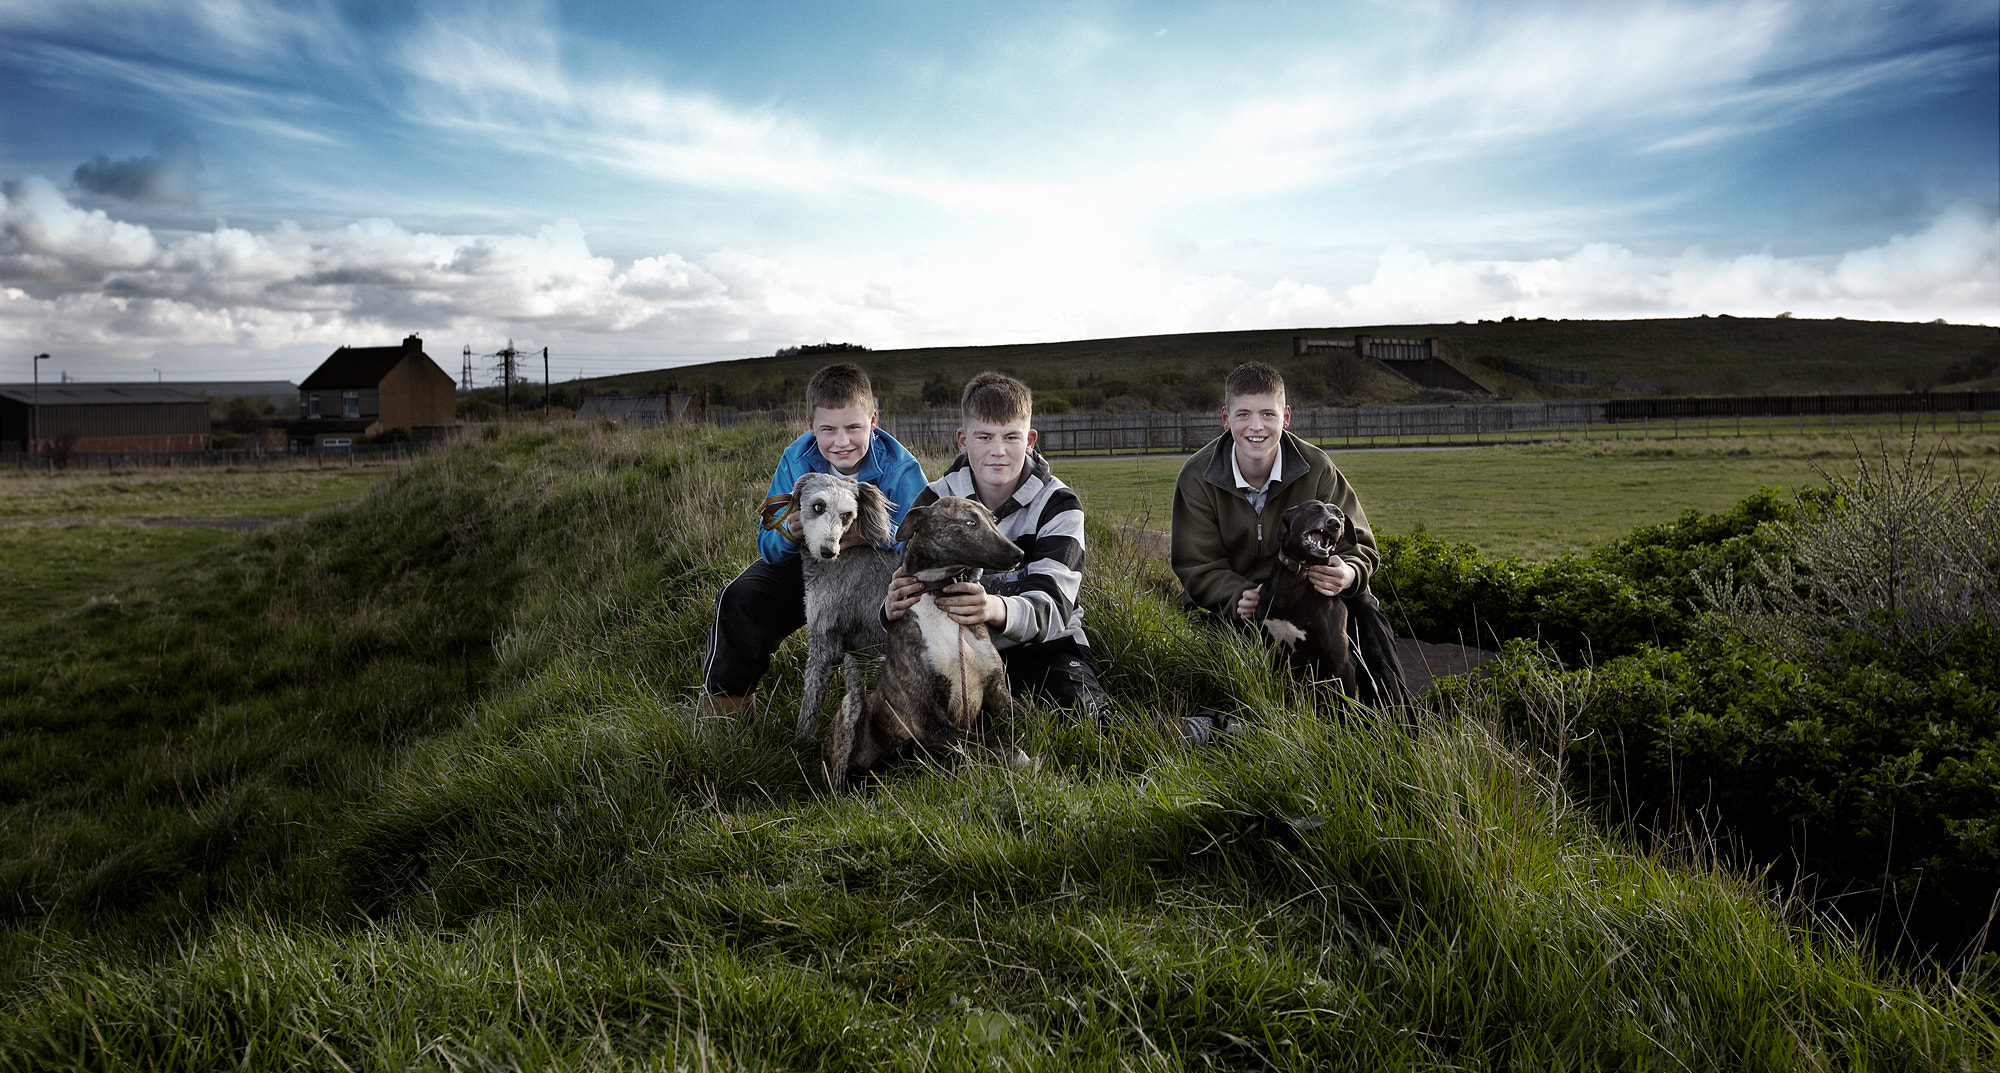 Photograph 3 Lads & Their Dogs by Adrian Hanlon on 500px